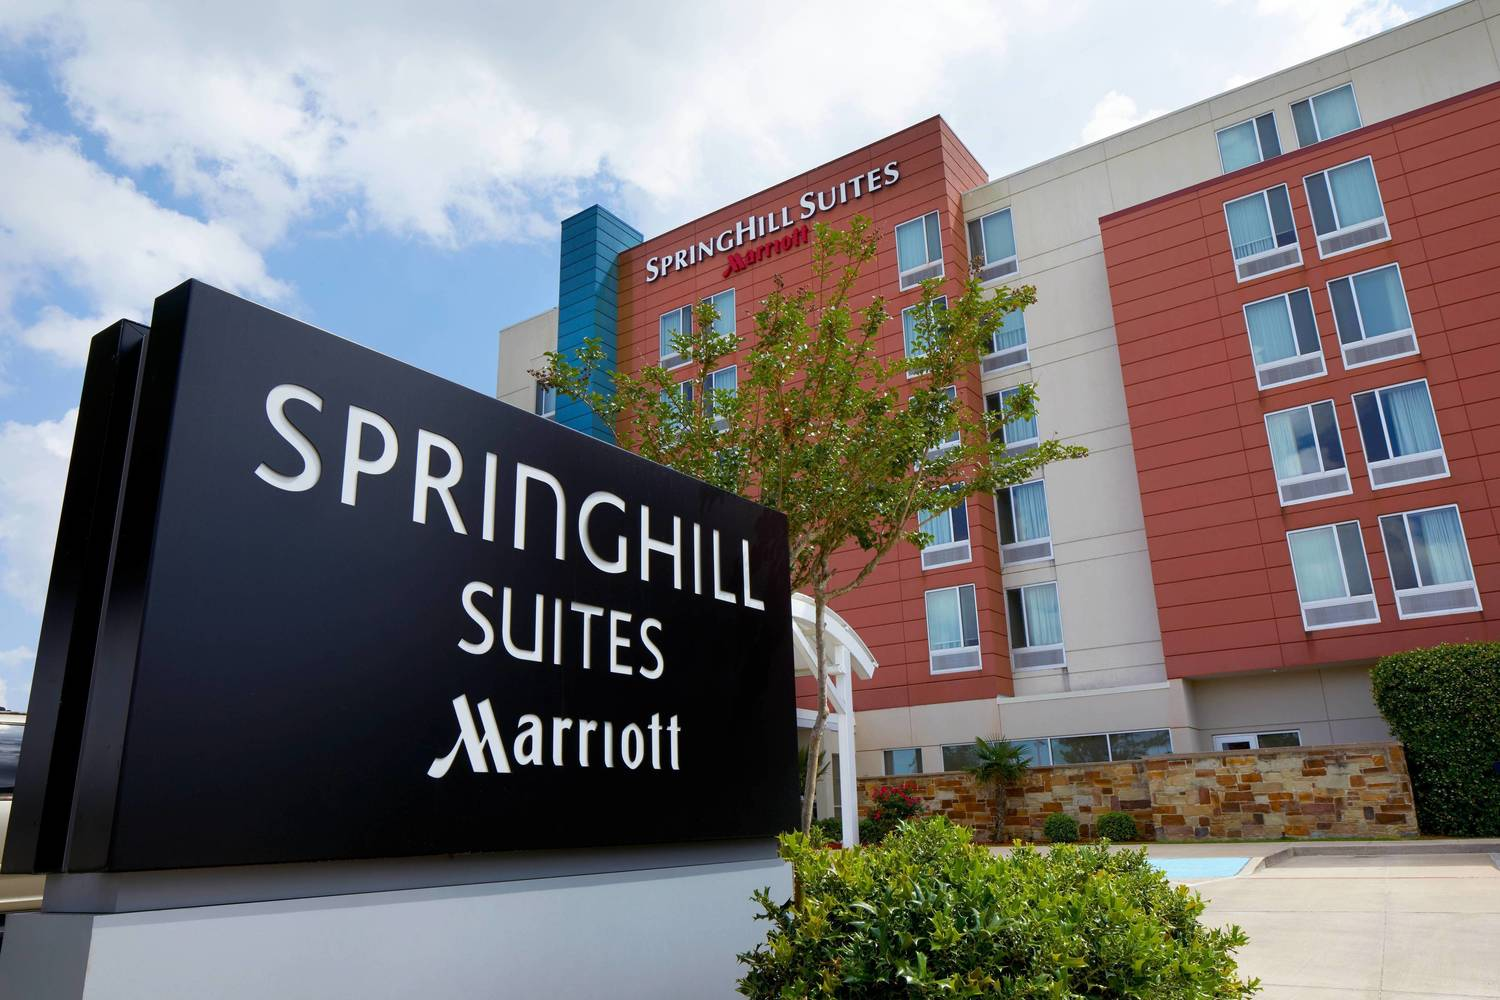 Springhill Suites Houston Nasa Webster Webster Tx Jobs